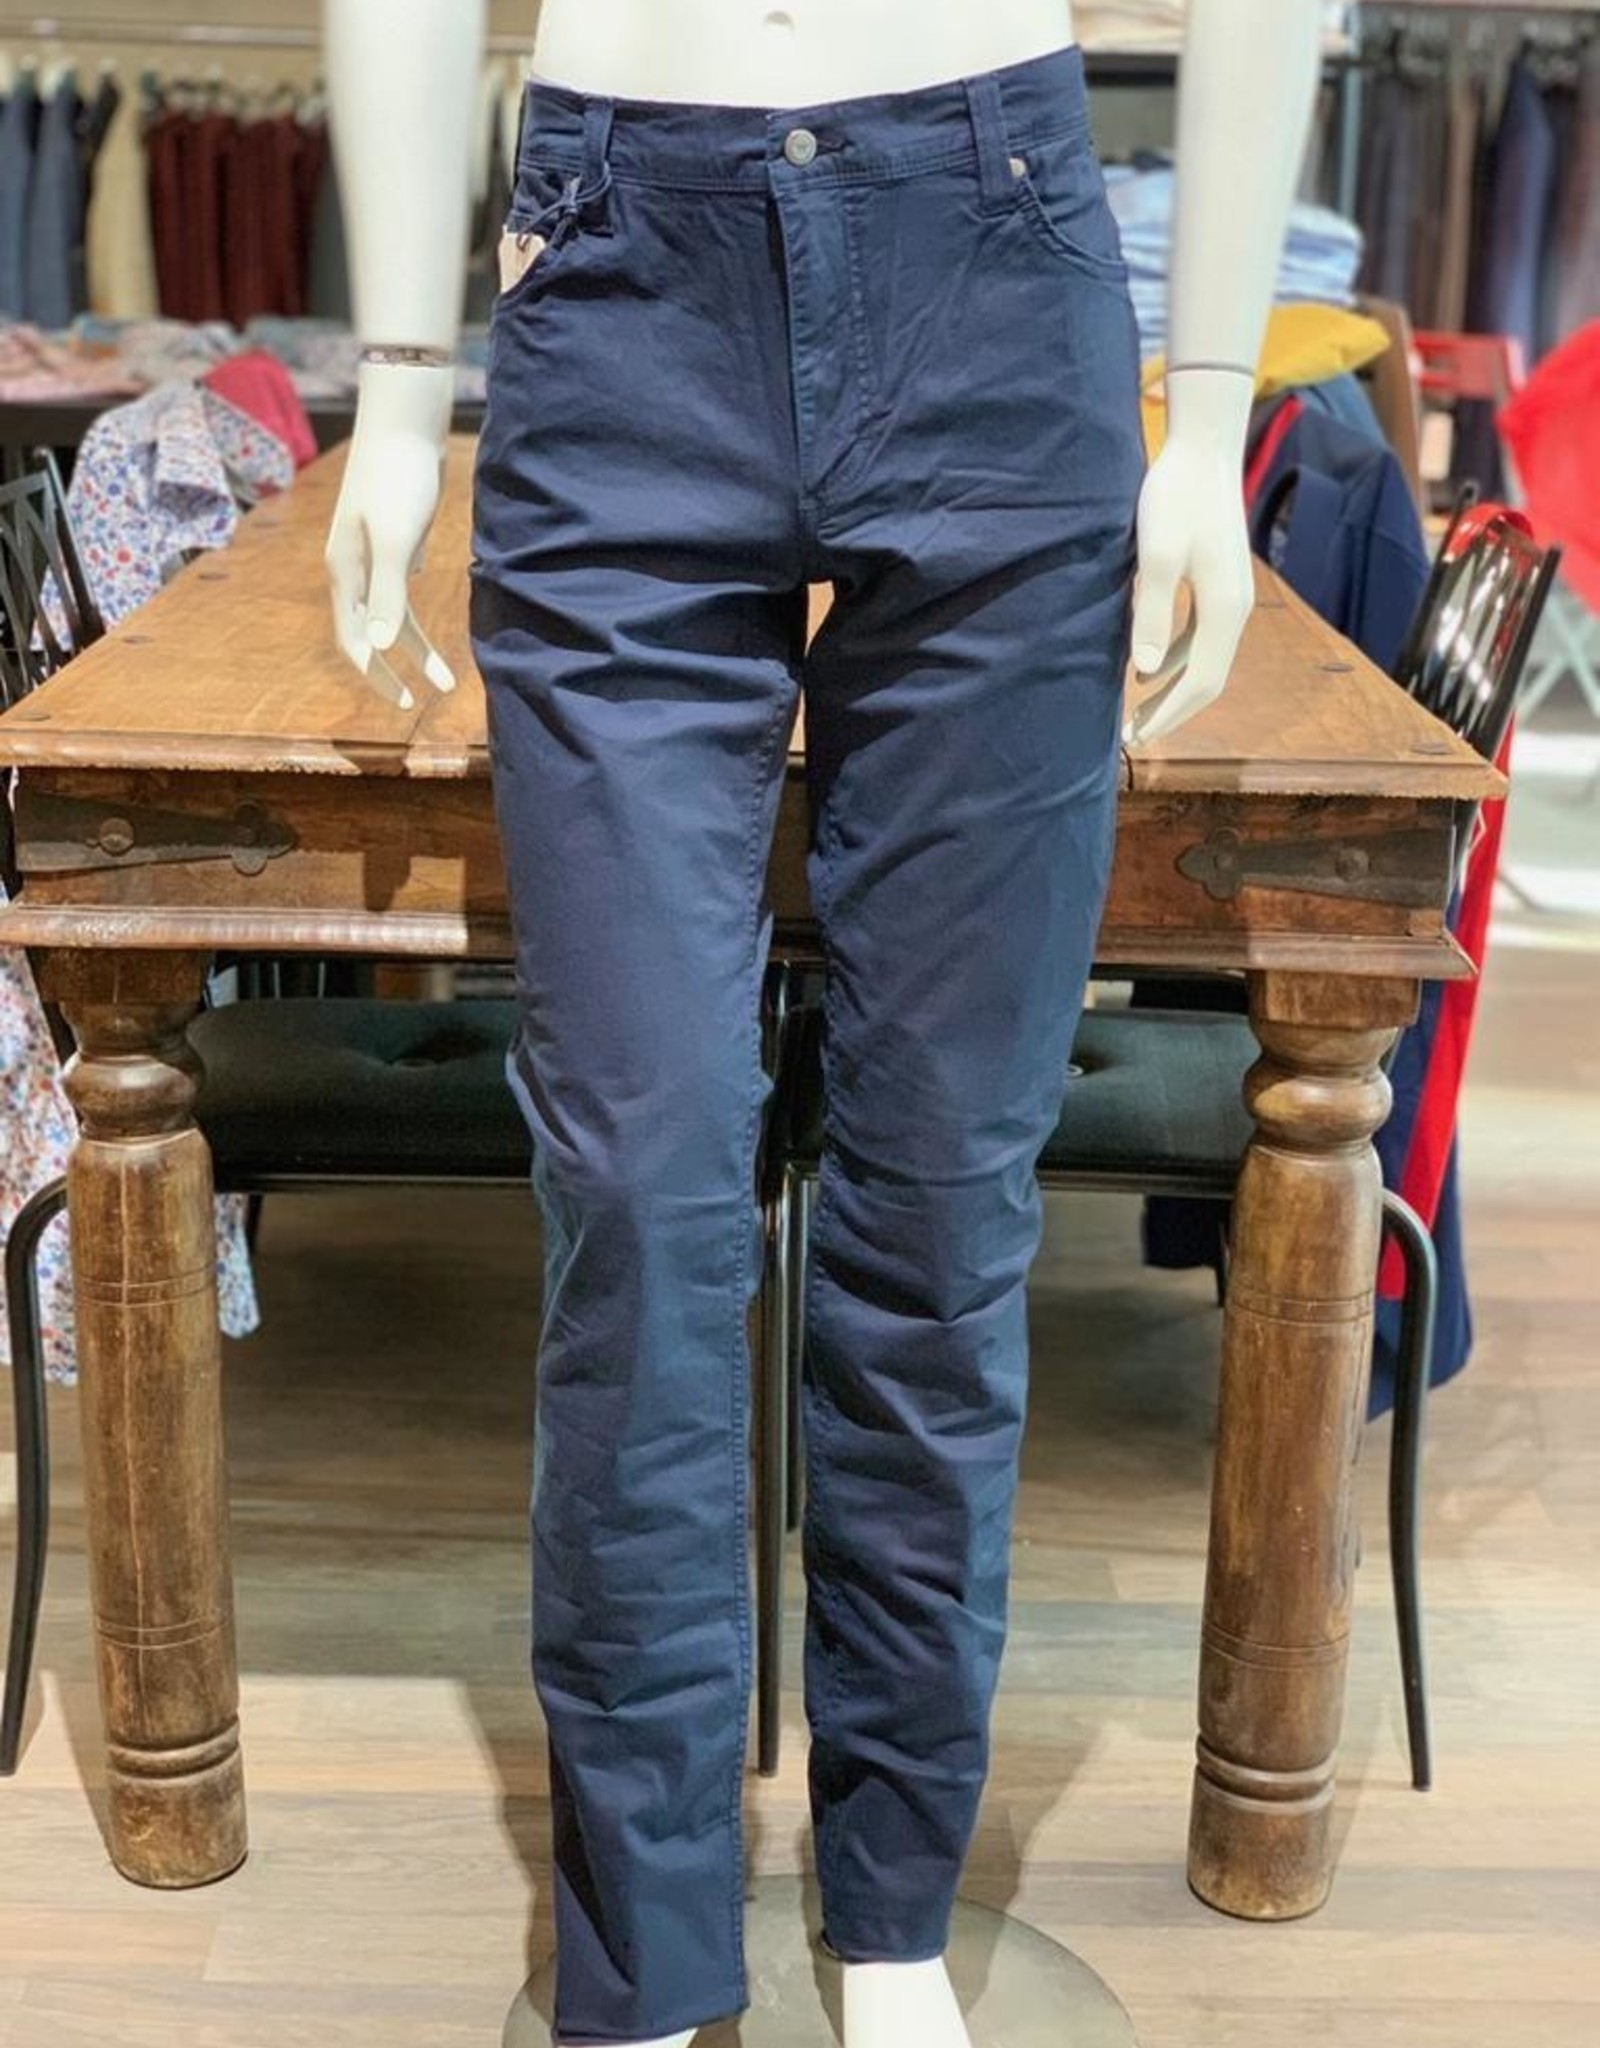 Mustang Jeans Mustang Jeans Washington Left Hand Twill